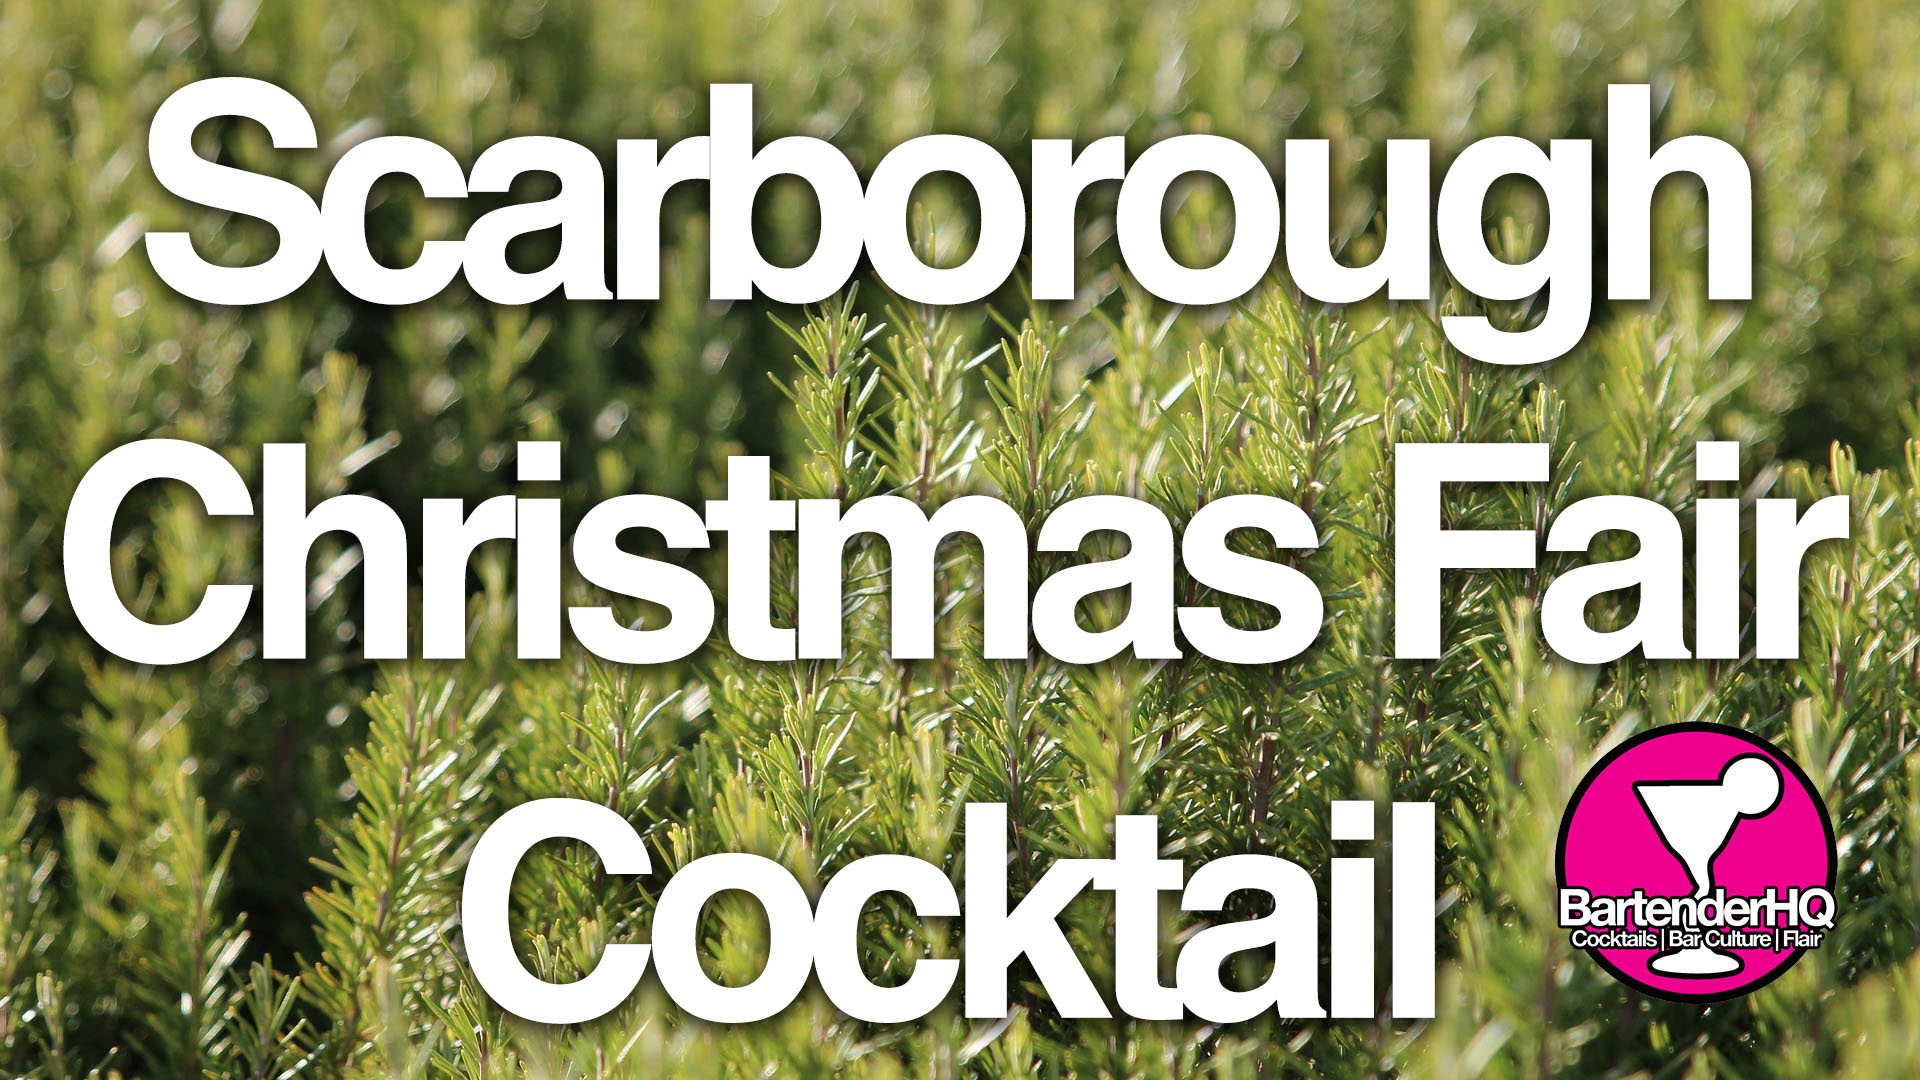 Scarborough Christmas Fair Cocktail (NUBI Competition Entry)